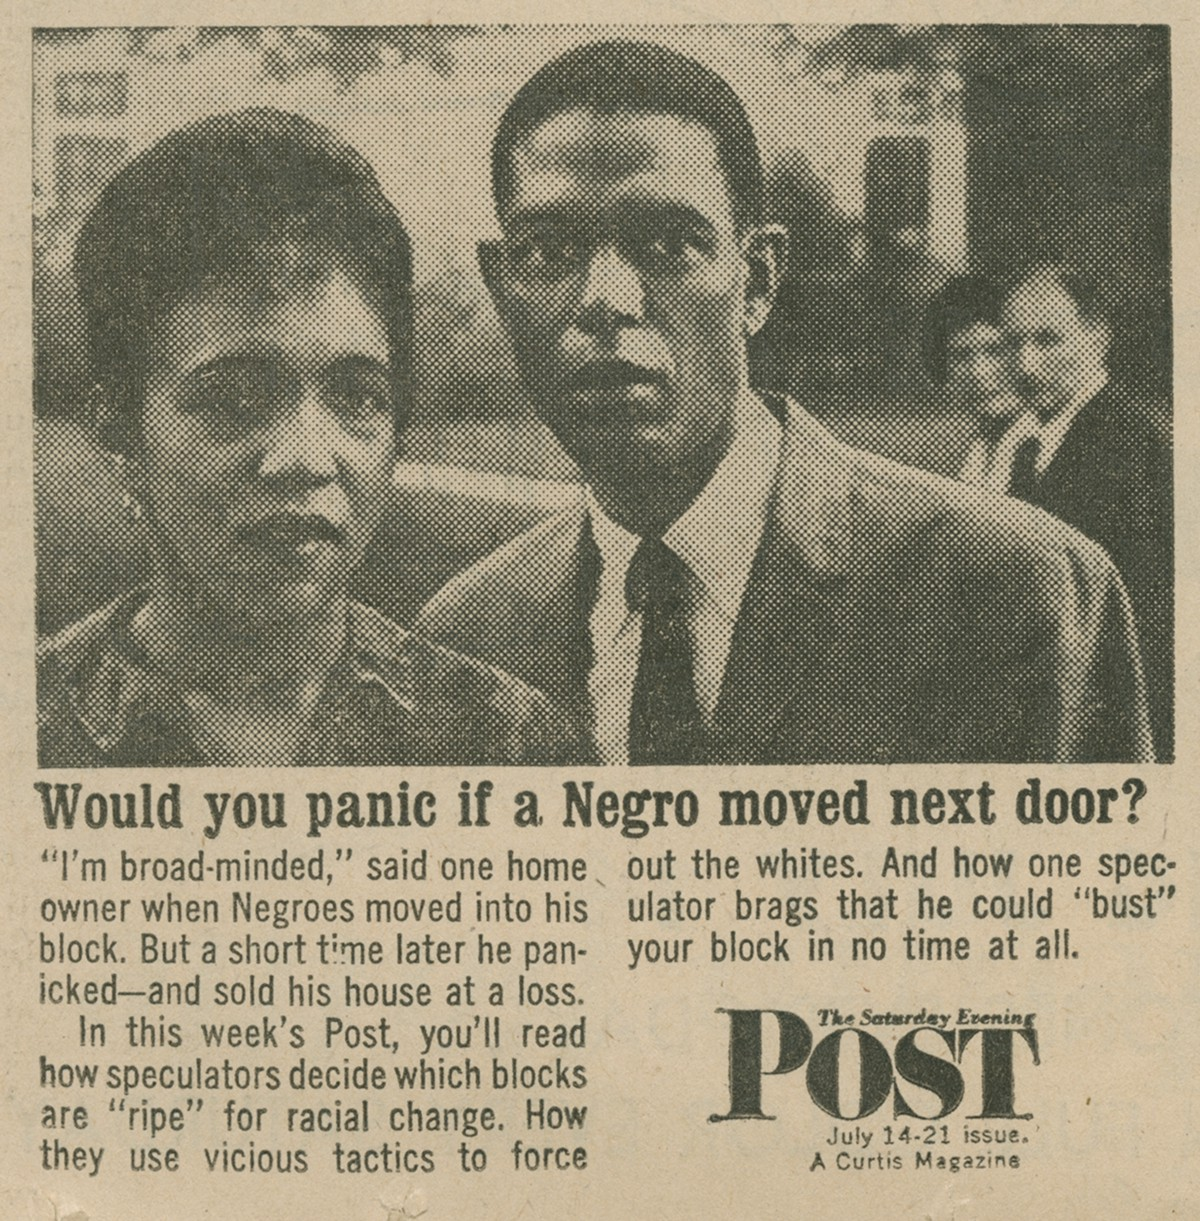 In this now infamous image from the  Saturday Evening Post,  real estate speculators stoked racial tensions in order to convince White homeowners to sell their homes quickly.